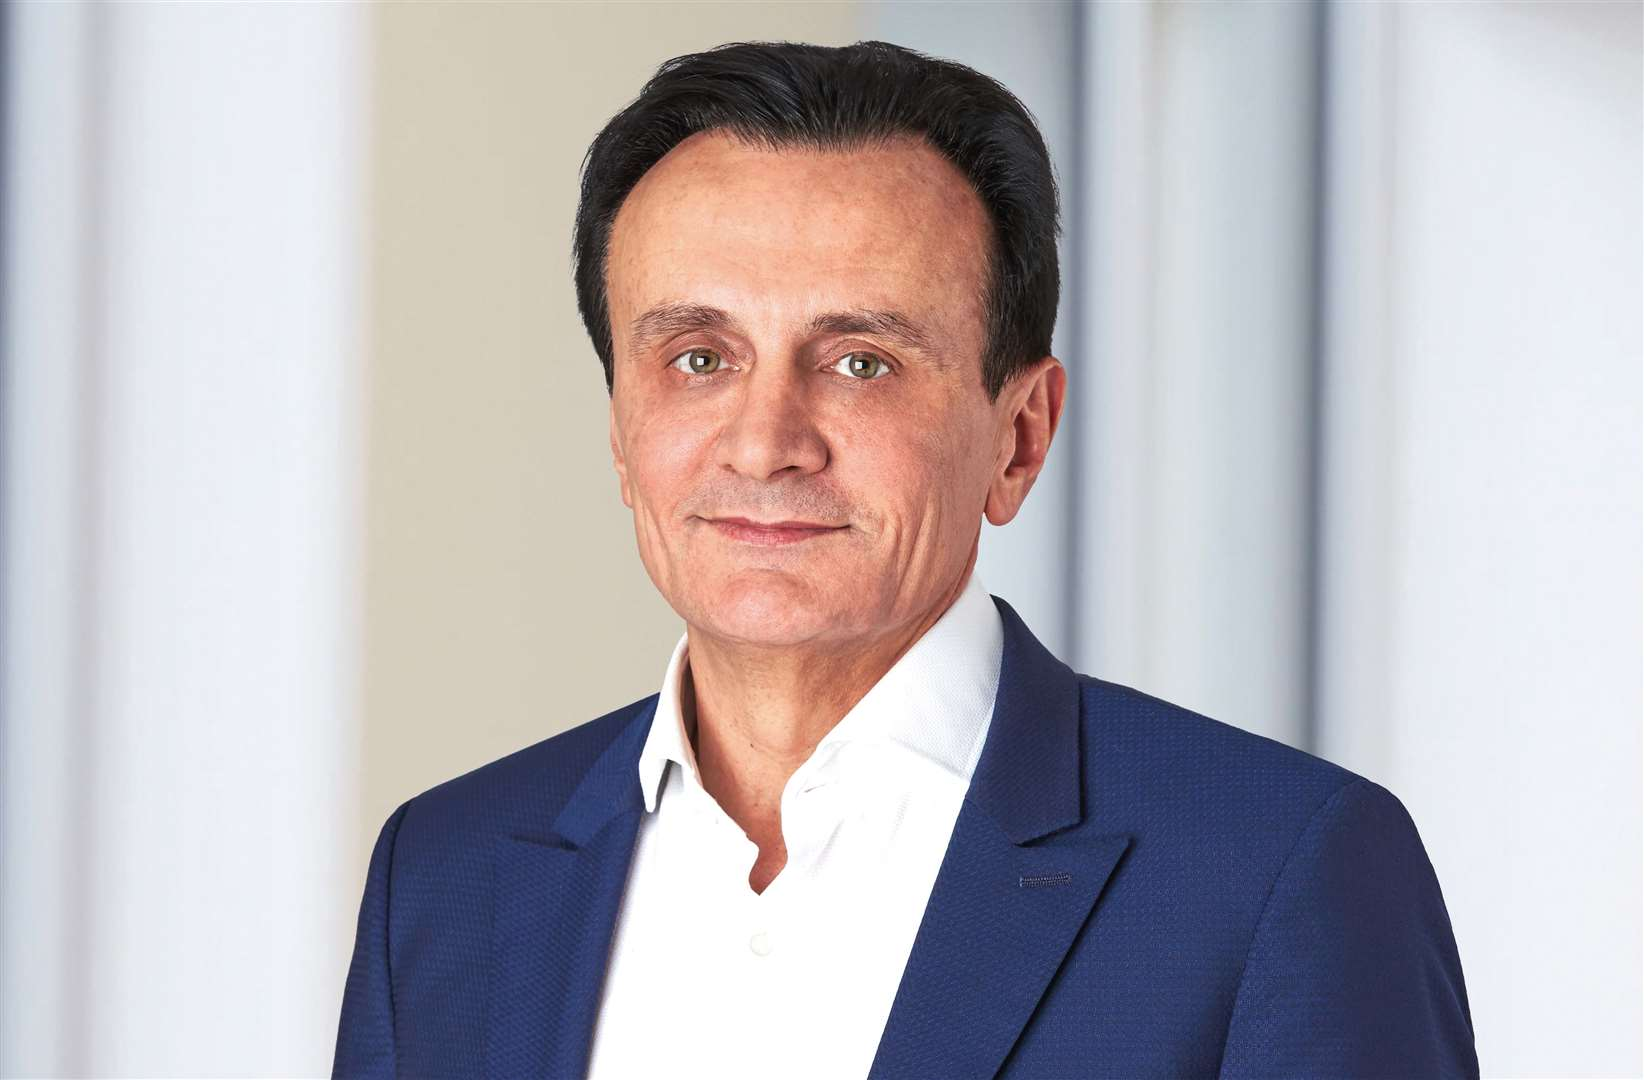 Pascal Soriot, chief executive officer of AstraZeneca